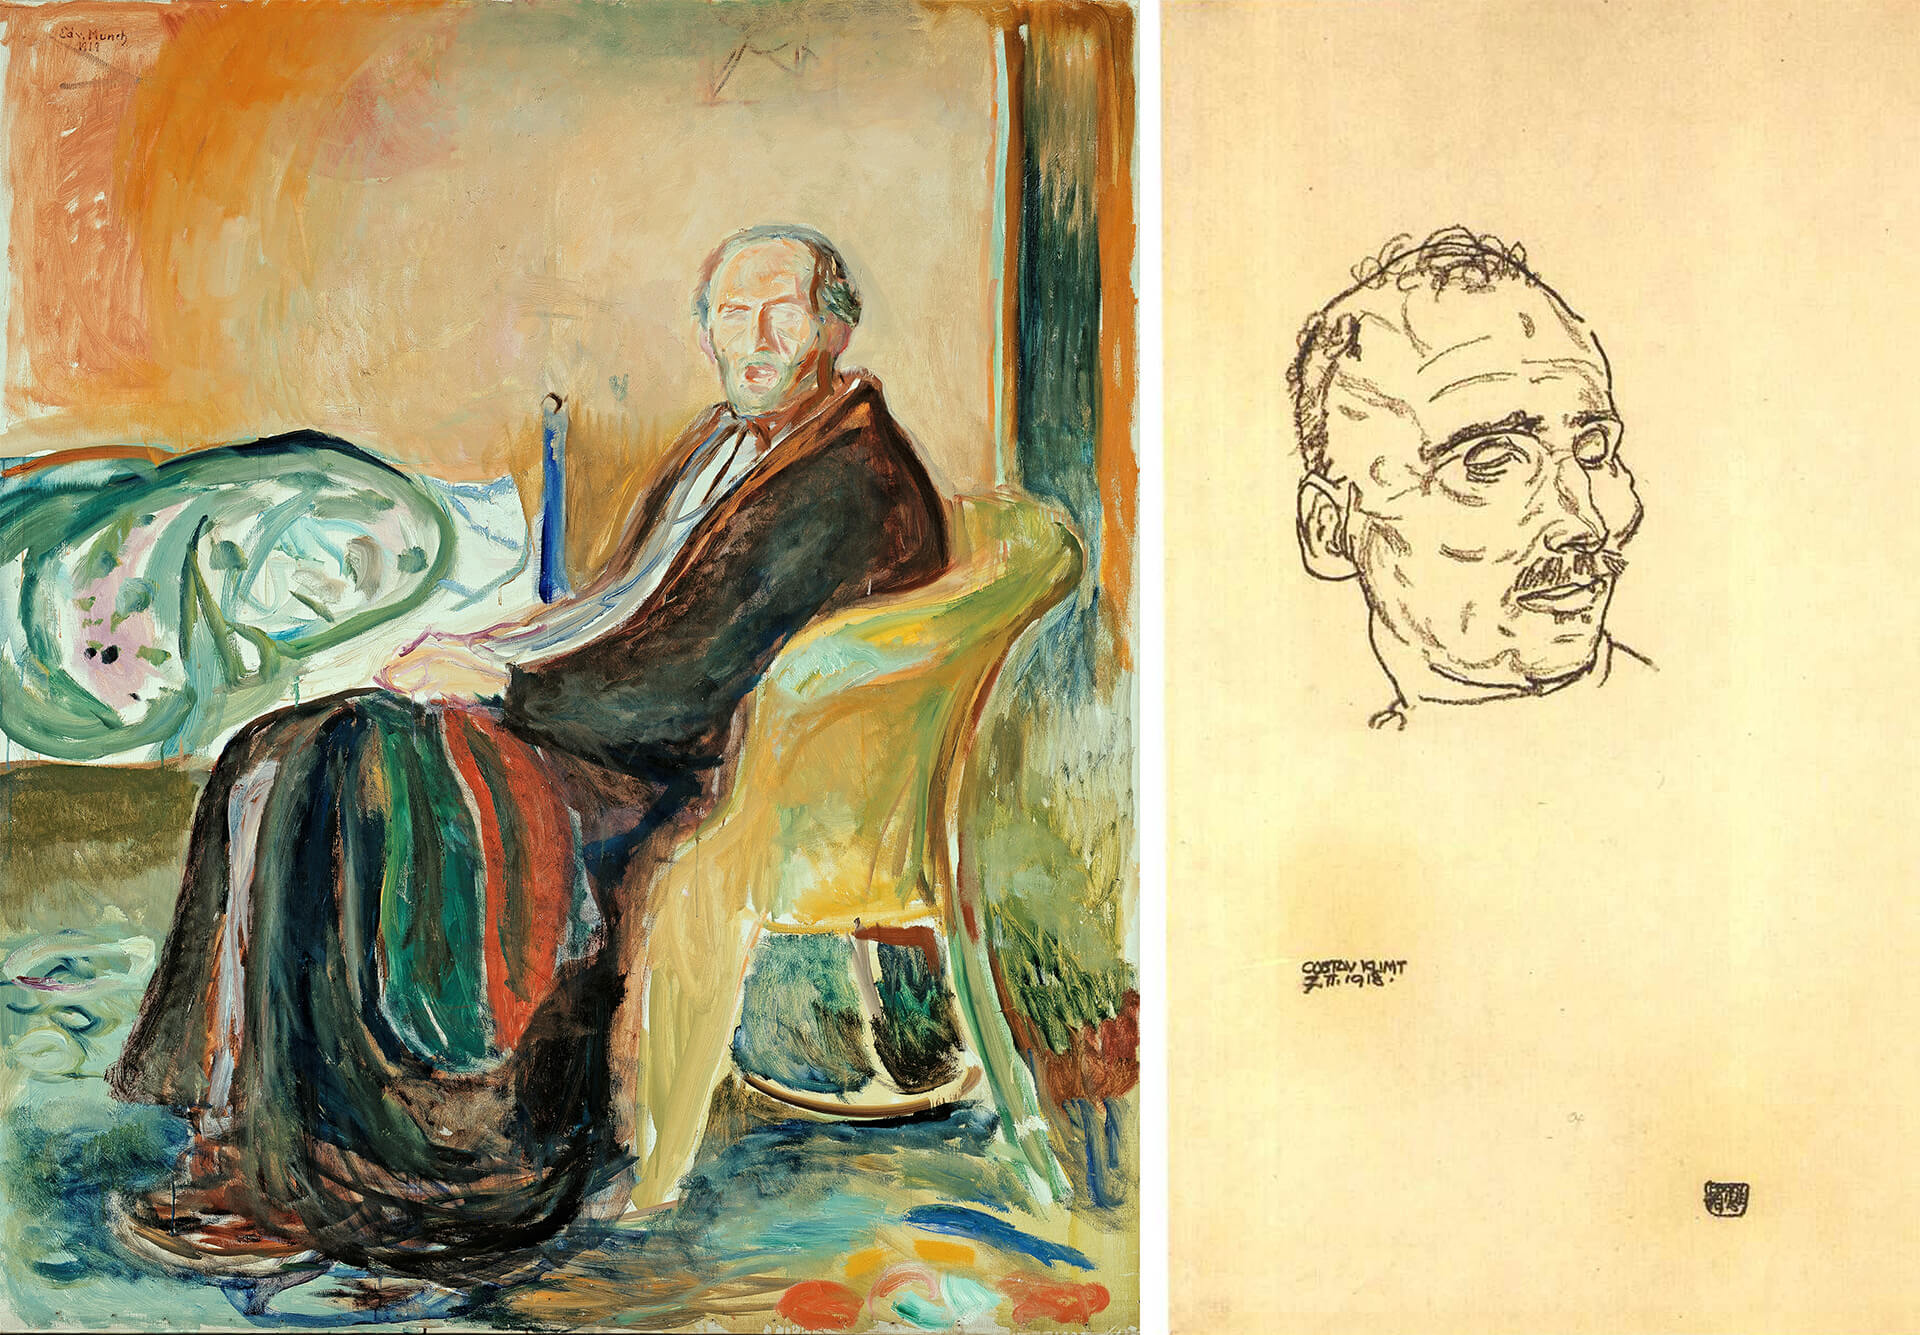 Gustav Klimt on his Deathbed by Egon Schiele | Self Portrait with the Spanish Flu by Edvard Munch | Future of arts | STIRworld